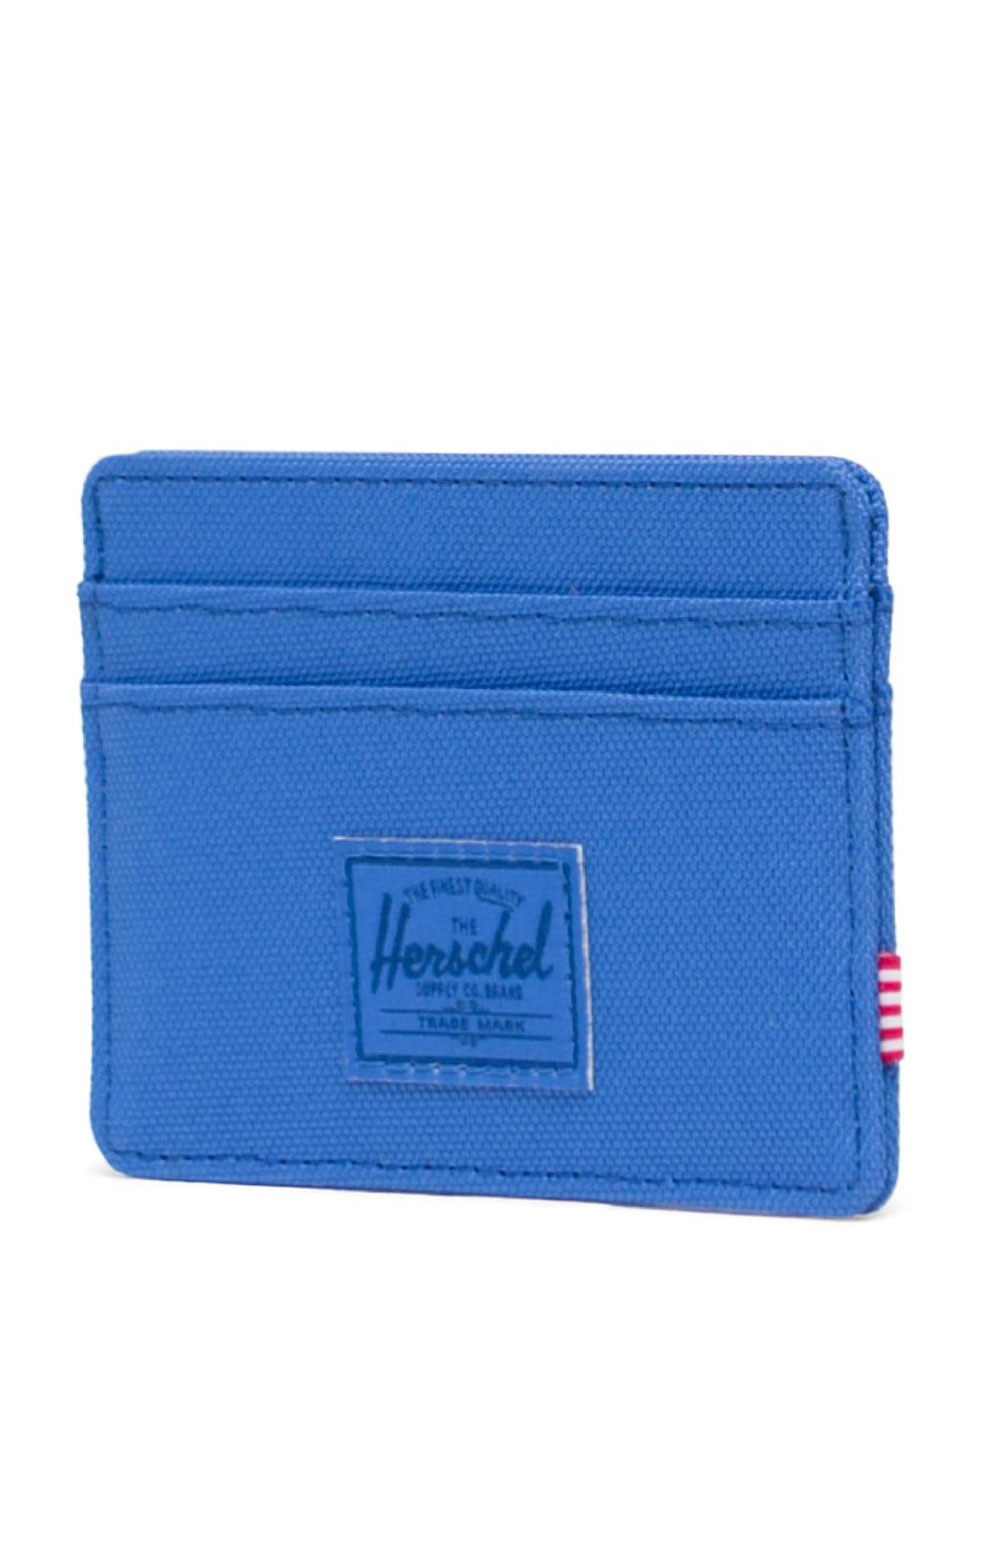 Charlie Wallet - Amparo Blue/Black 2